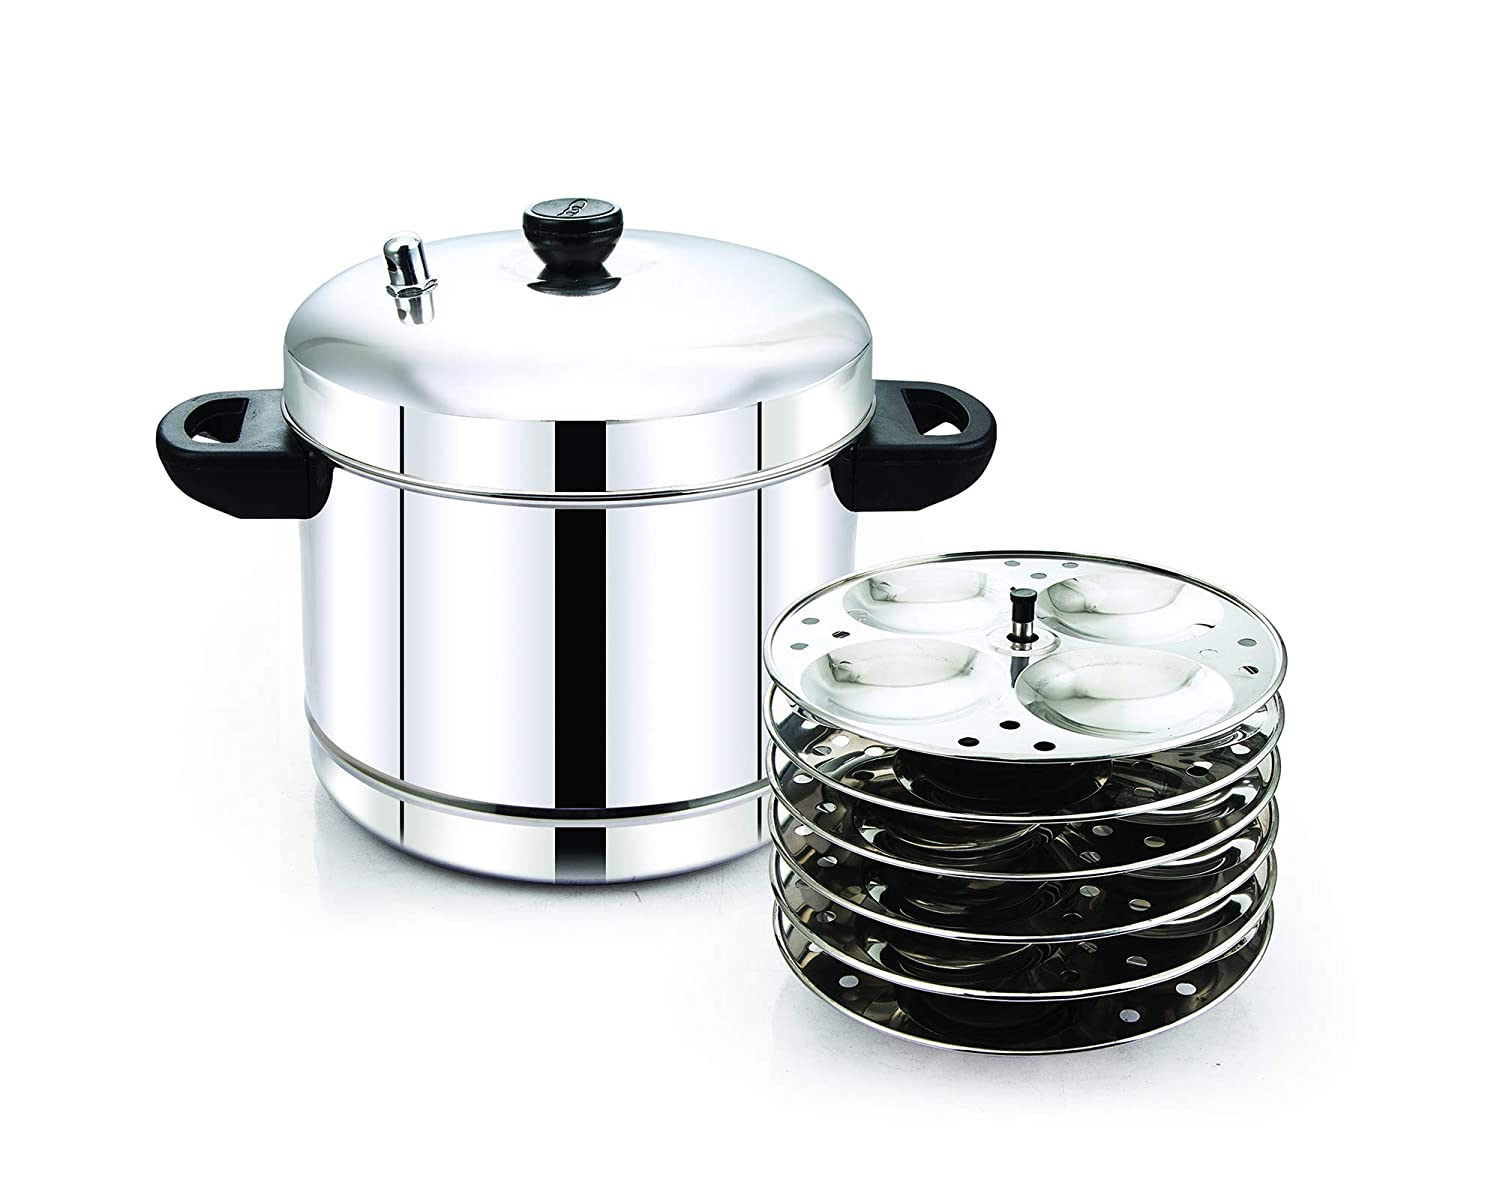 Tallboy Classic 6 Plates Idli Cooker Stainless Steel with Induction Base, (24 Idlis)